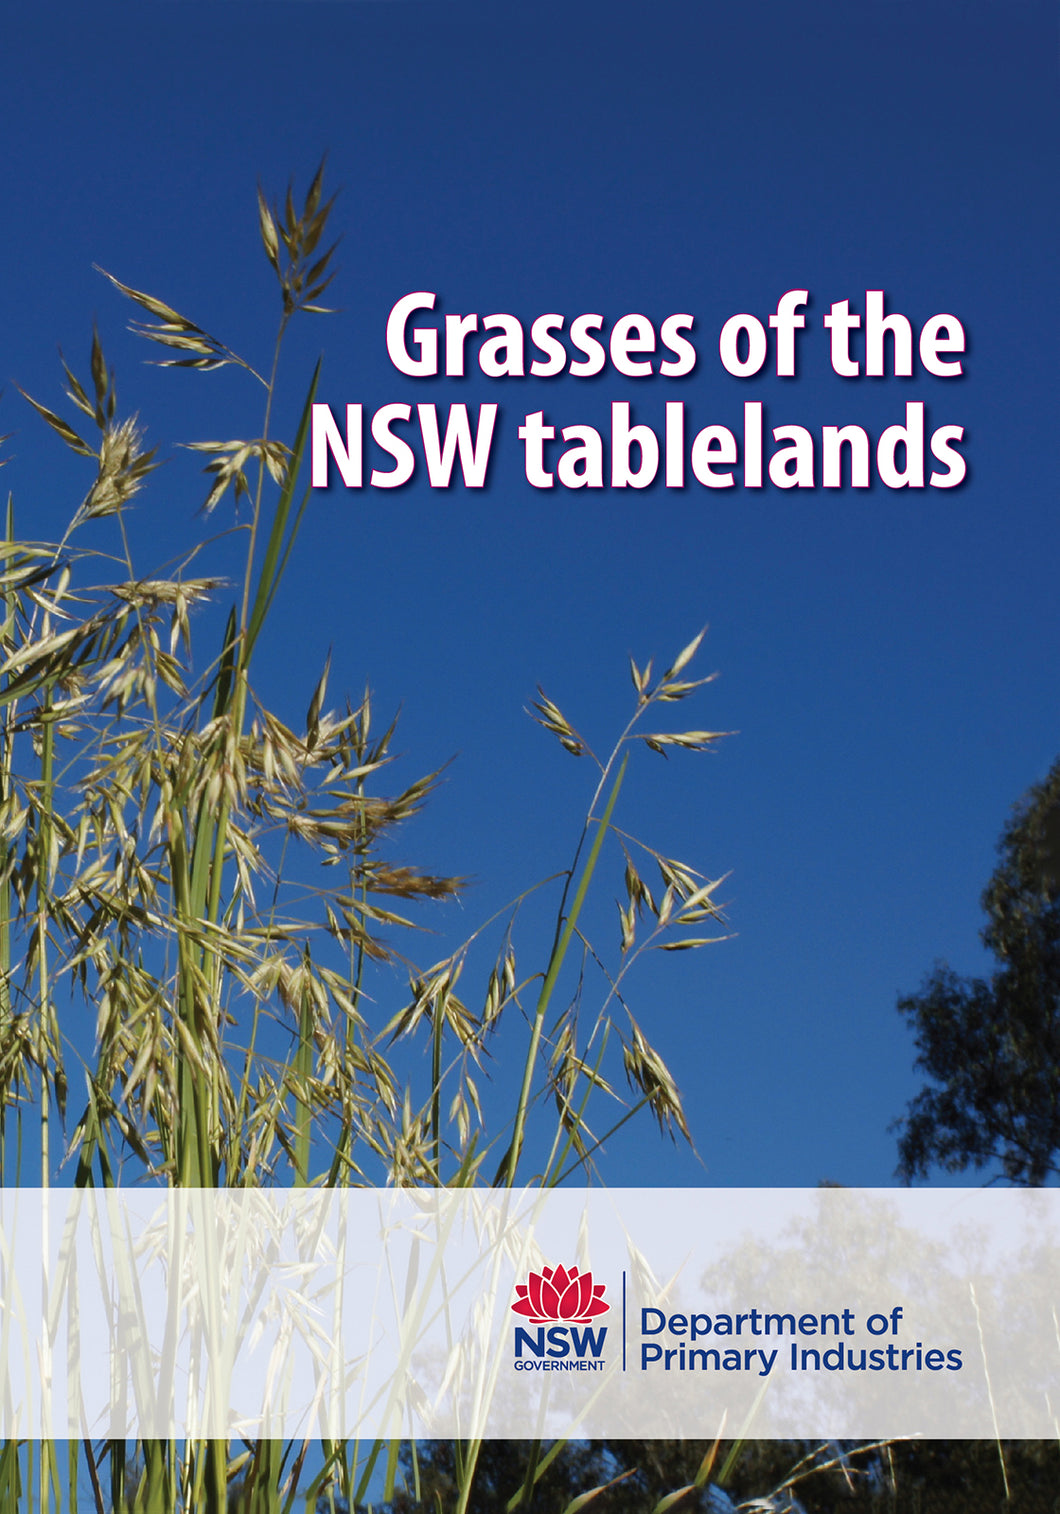 Grasses of NSW tablelands bookcover